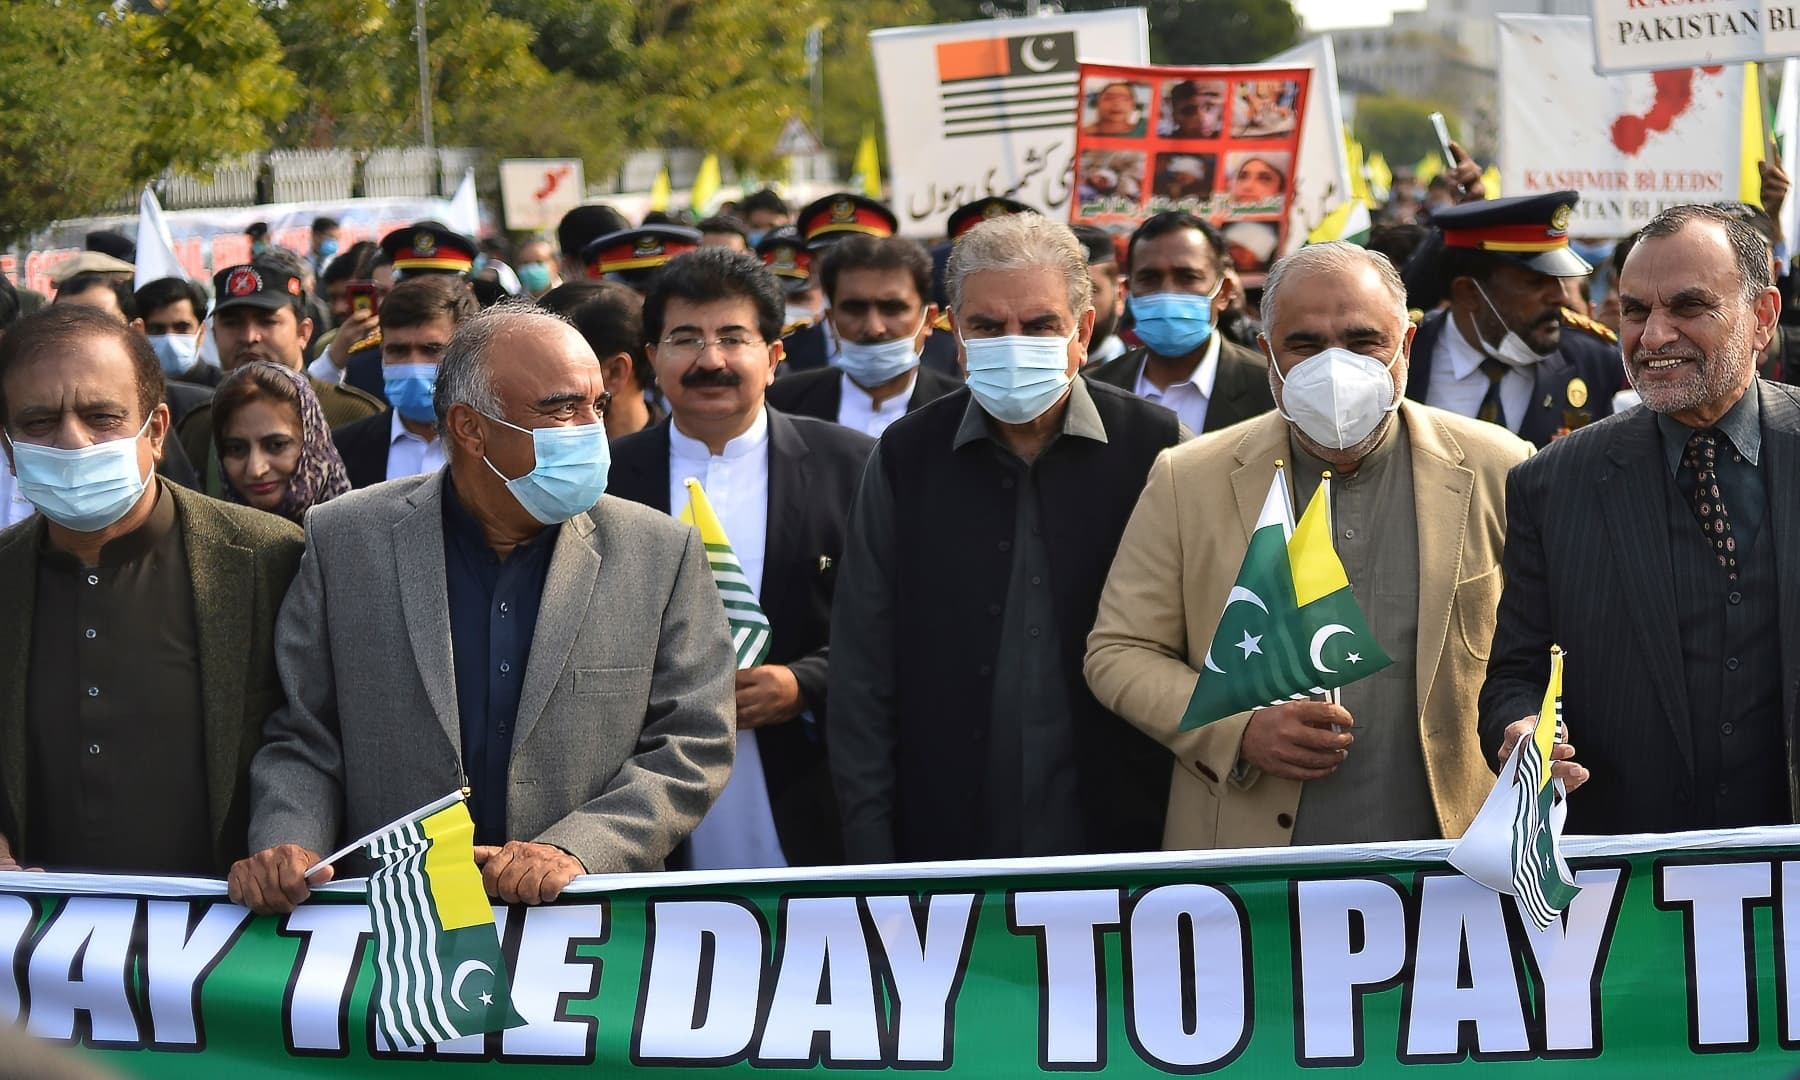 Foreign Minister Shah Mahmood Qureshi (3R) along with lawmakers and leaders take part in a rally to mark Kashmir Solidarity Day in front of the parliament in Islamabad. — AFP